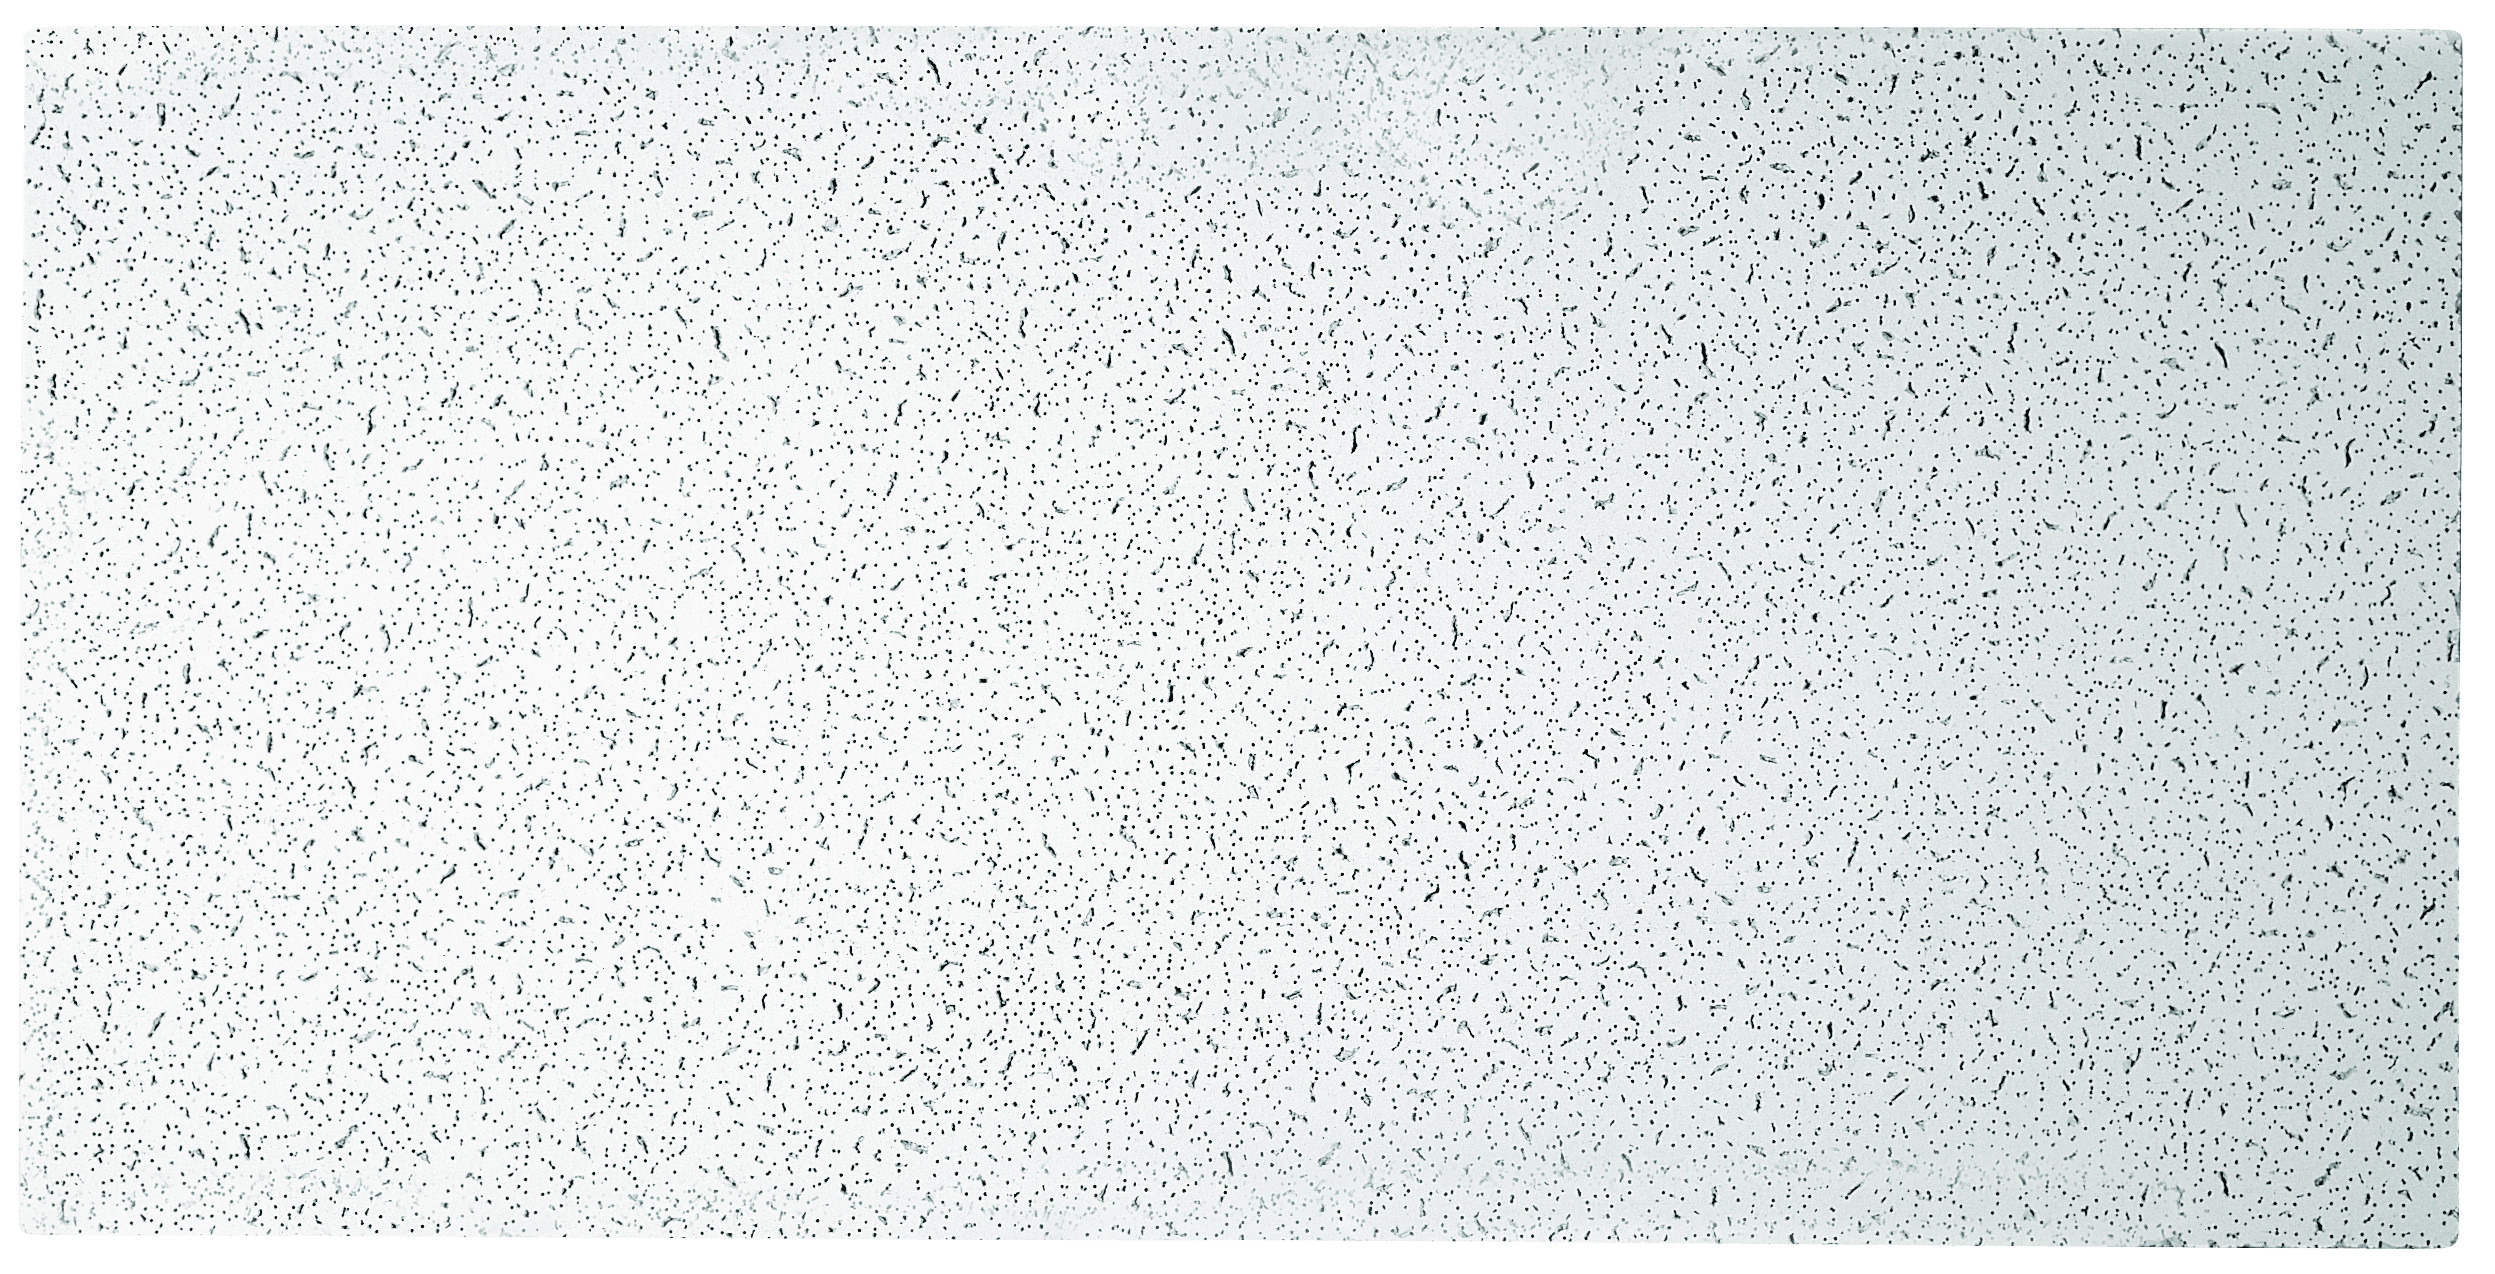 Usg interiors 725 plateau 2 by 4 by 916 ceiling tile panel hover to zoom dailygadgetfo Image collections